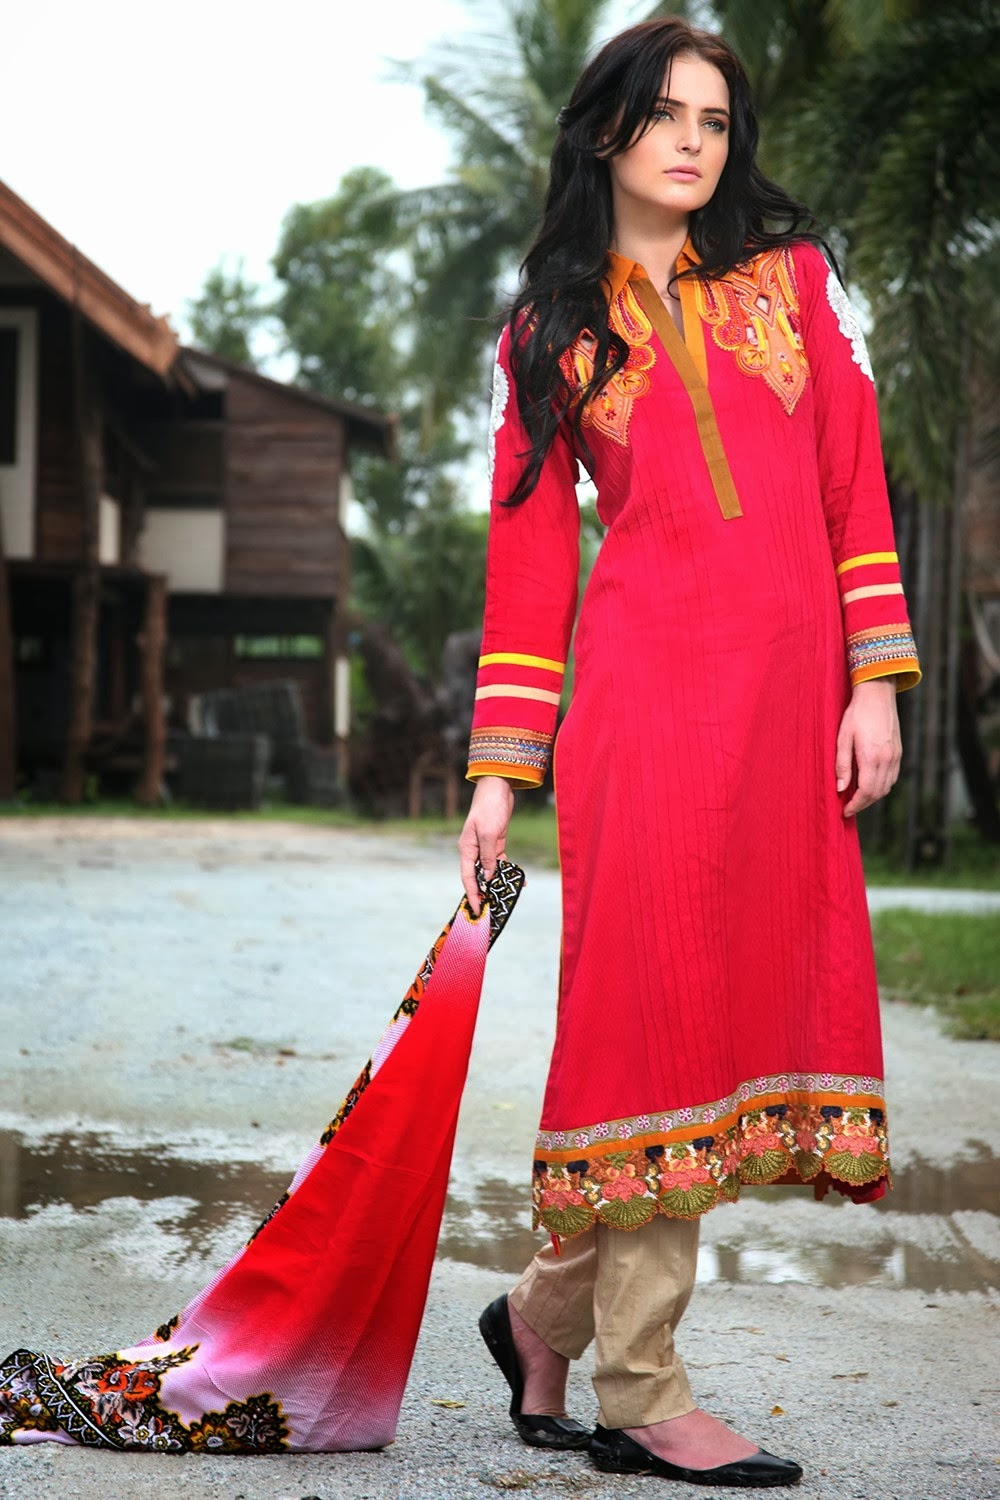 SatrangiByBonanzaFall Winter2013 2014 wwwfashionhuntworldblogspotcom 008 - Bonanza Satrangi Winter Collection 2014